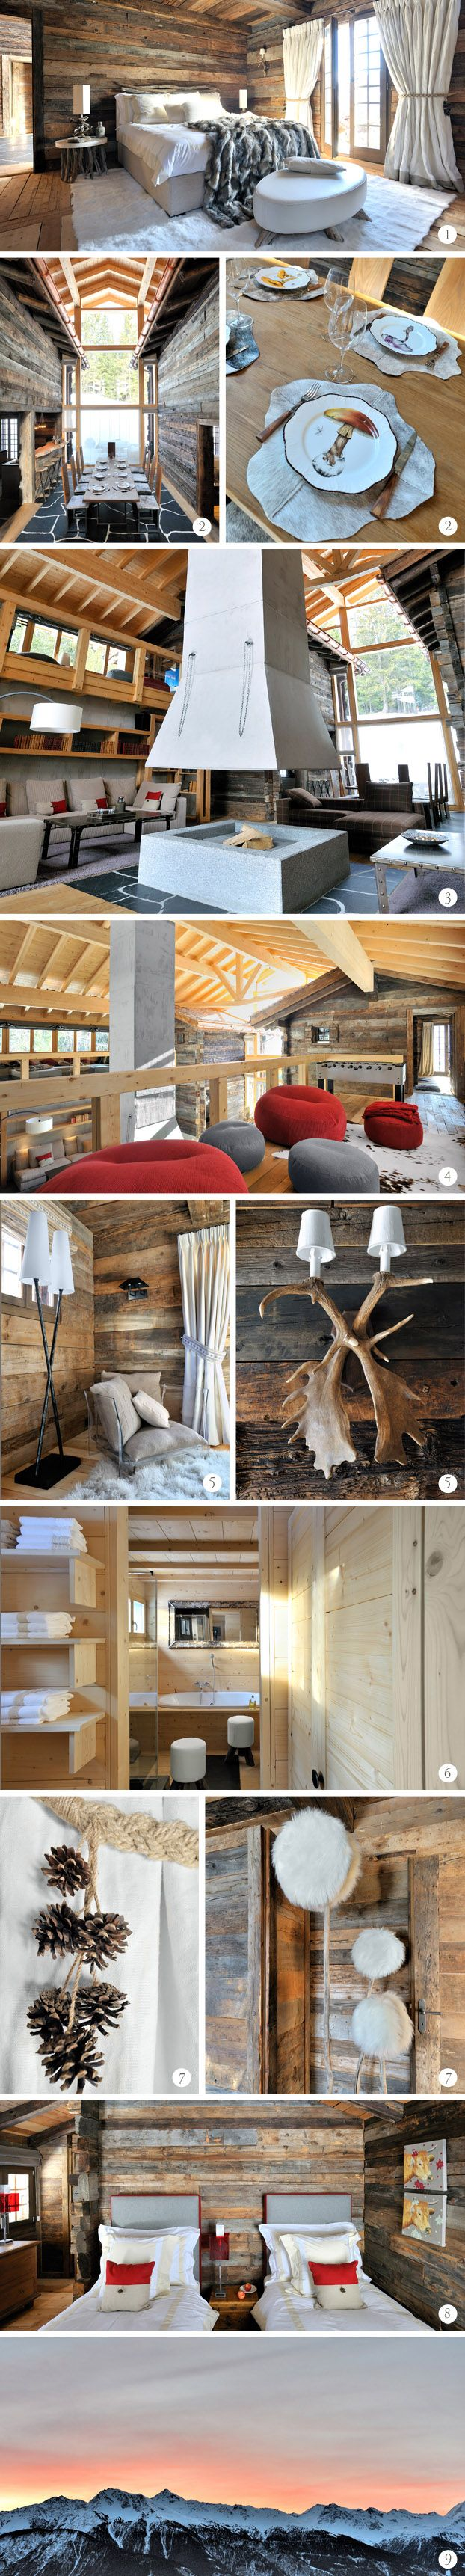 suisse un chalet blanc magazine deco suisse et chalet. Black Bedroom Furniture Sets. Home Design Ideas